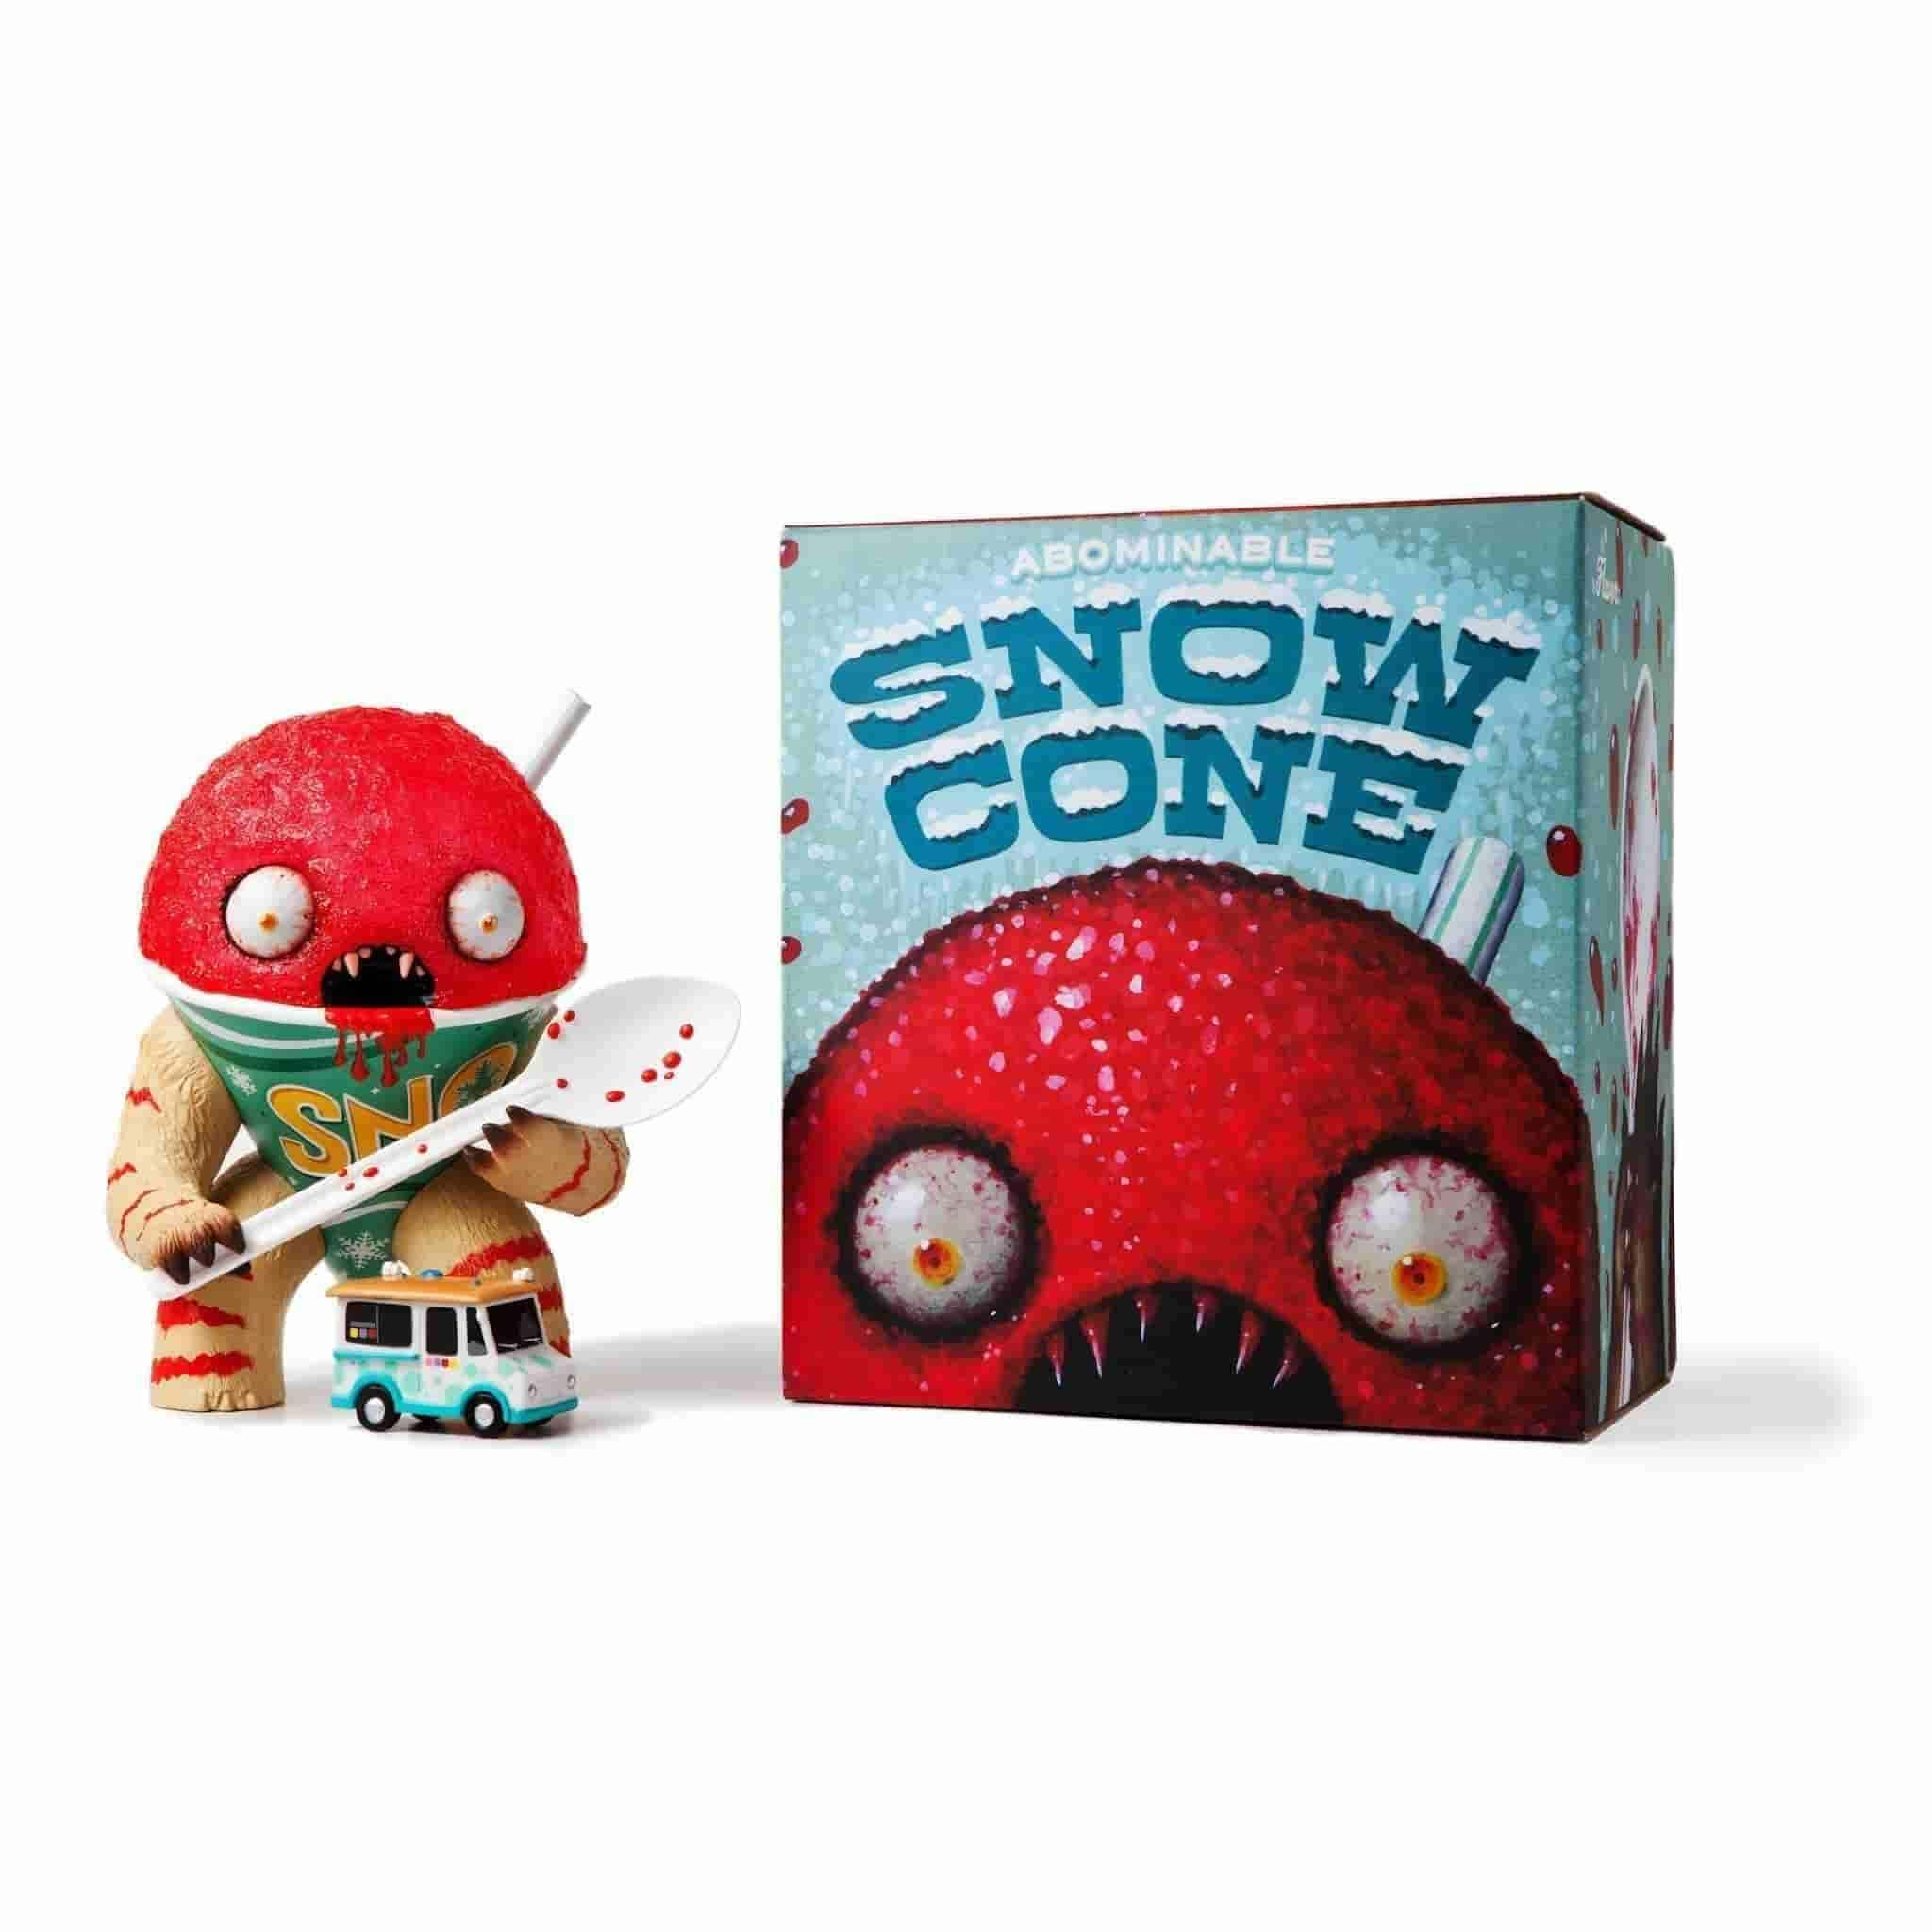 The Abominable Snow Cone (Cherry) by Jason Limon x Martian Toys - IamRetro.com